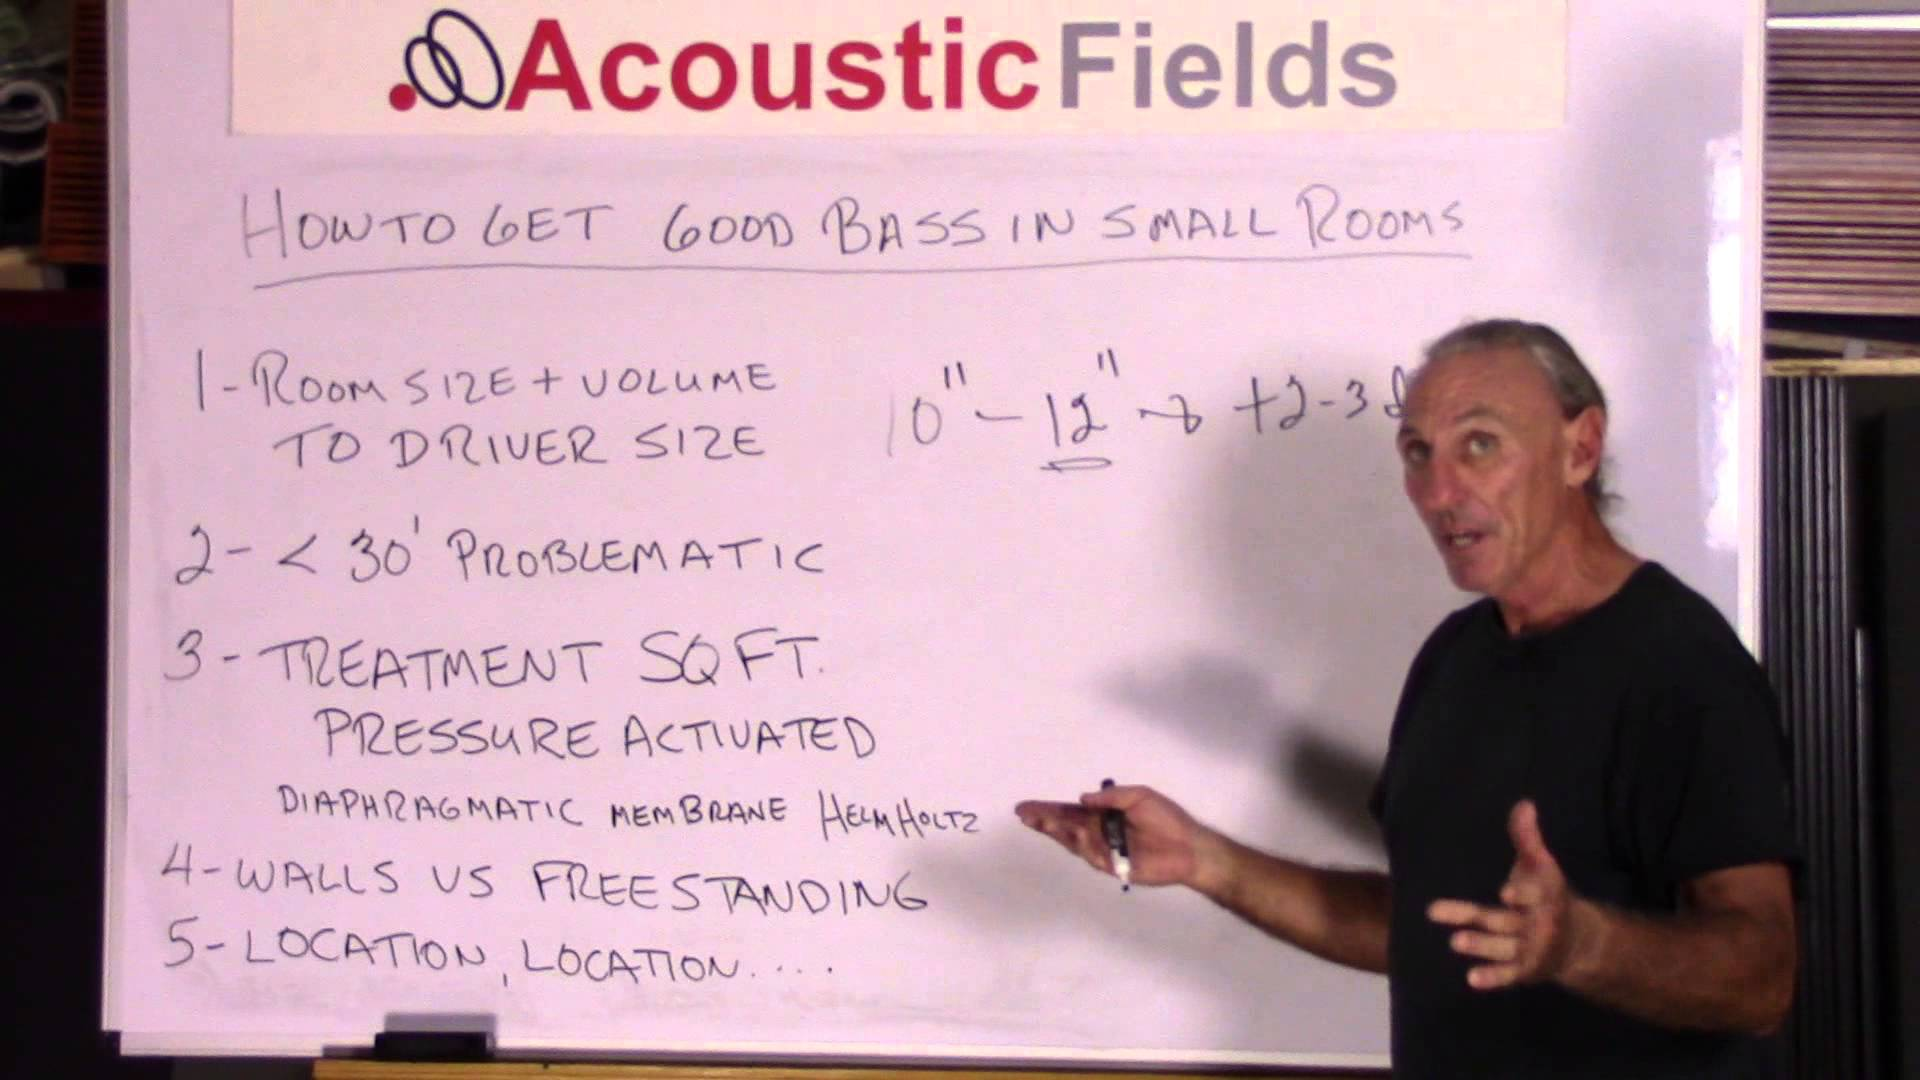 how to get good bass in small rooms acoustic fields how to get good bass in small rooms